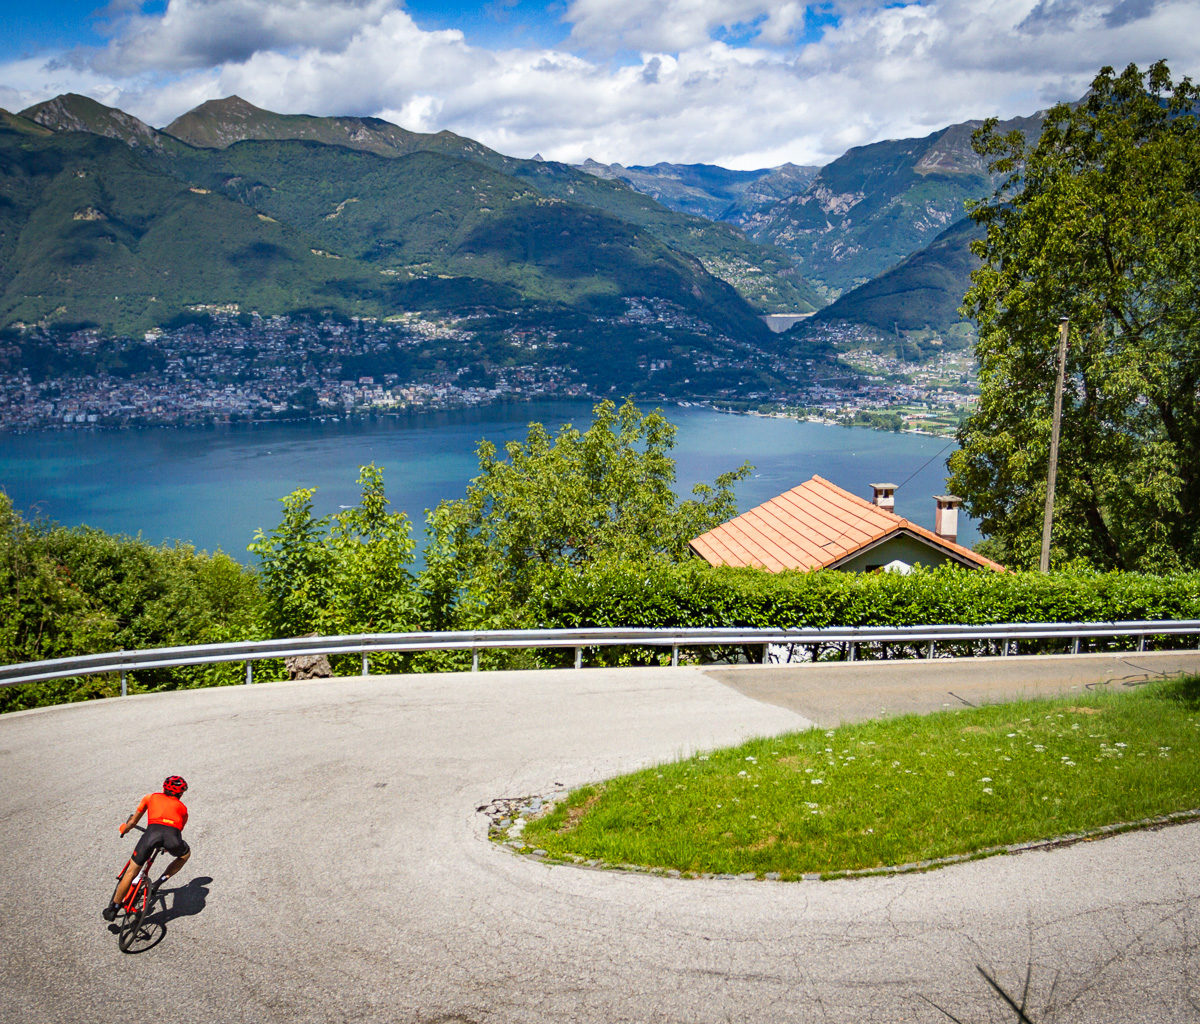 One male cyclist descending Alpe di Neggia in Ticino, Switzerland